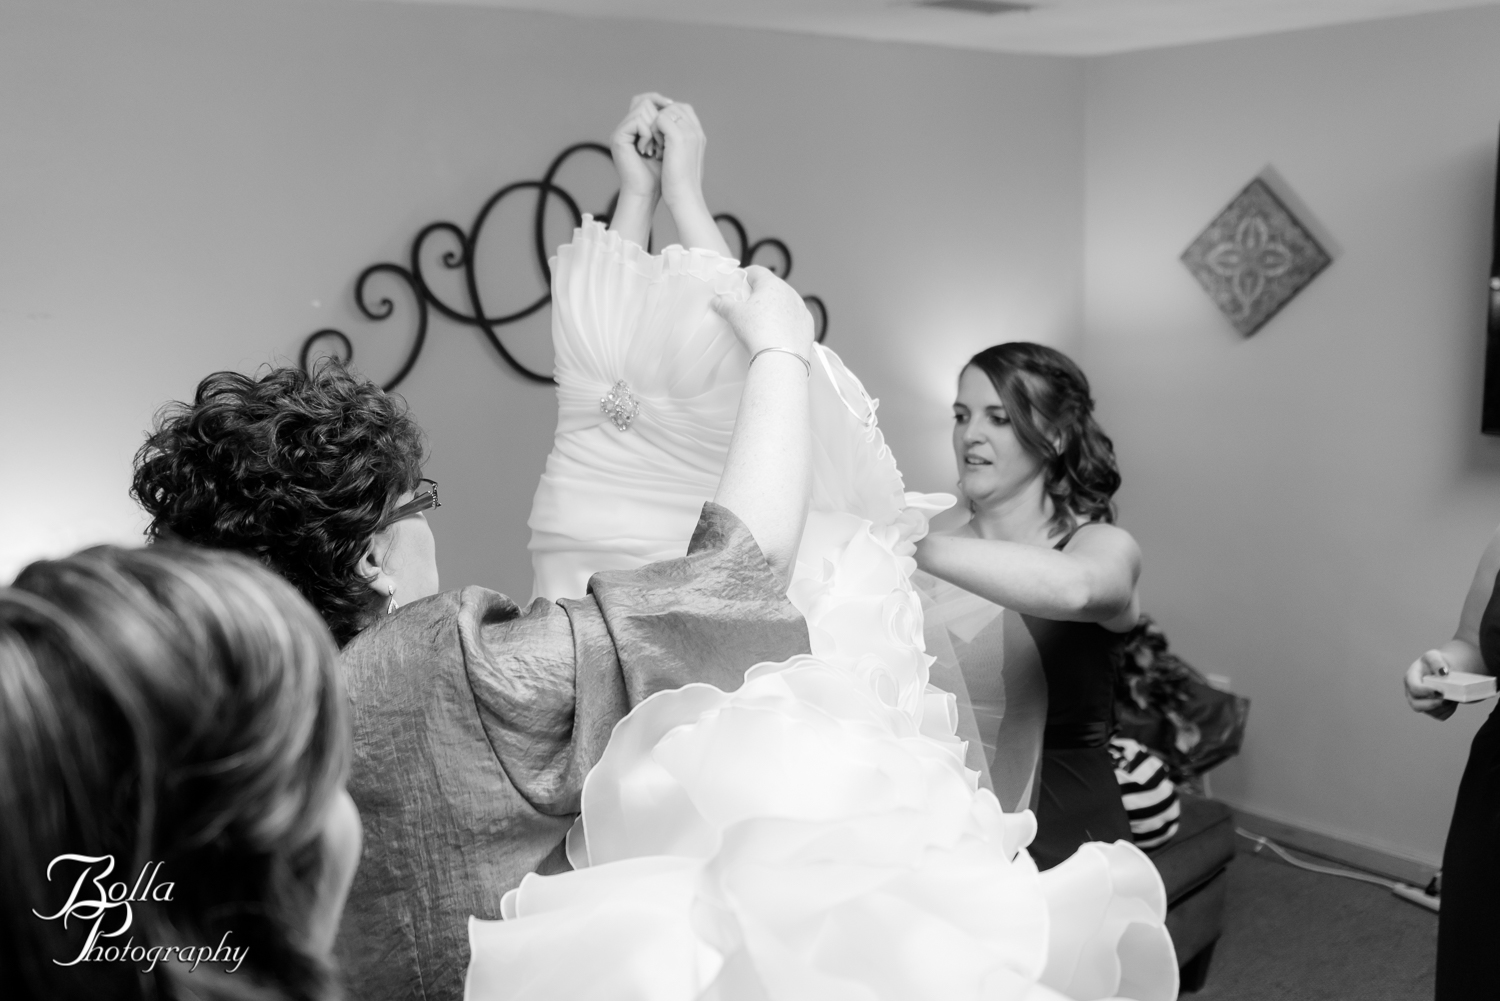 Bolla_Photography_St_Louis_wedding_photographer-0037.jpg